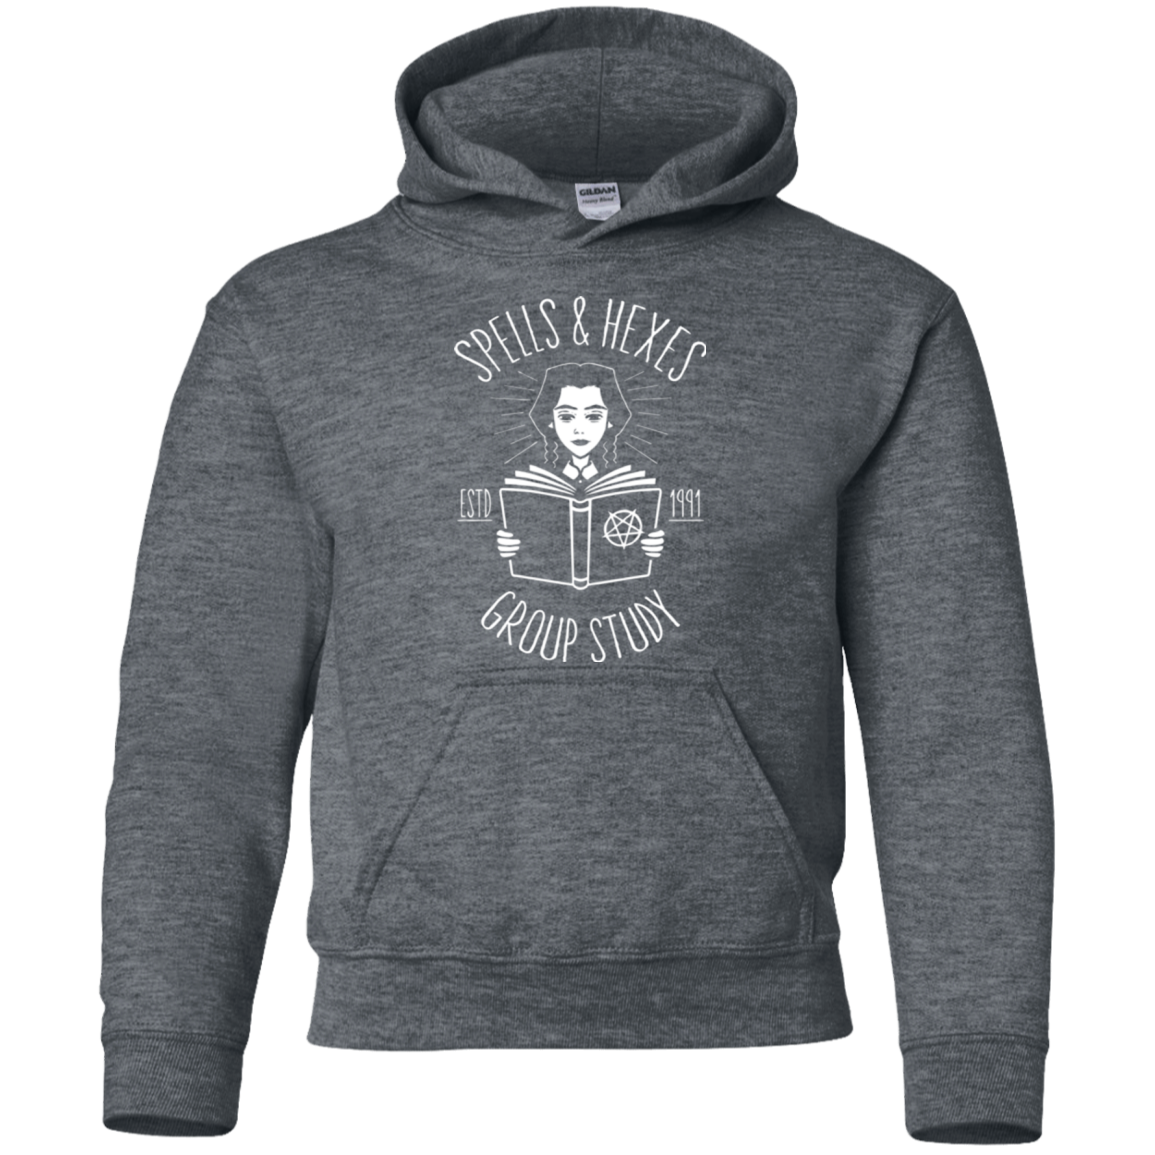 Spells and Hexes Group Study Youth Hoodie